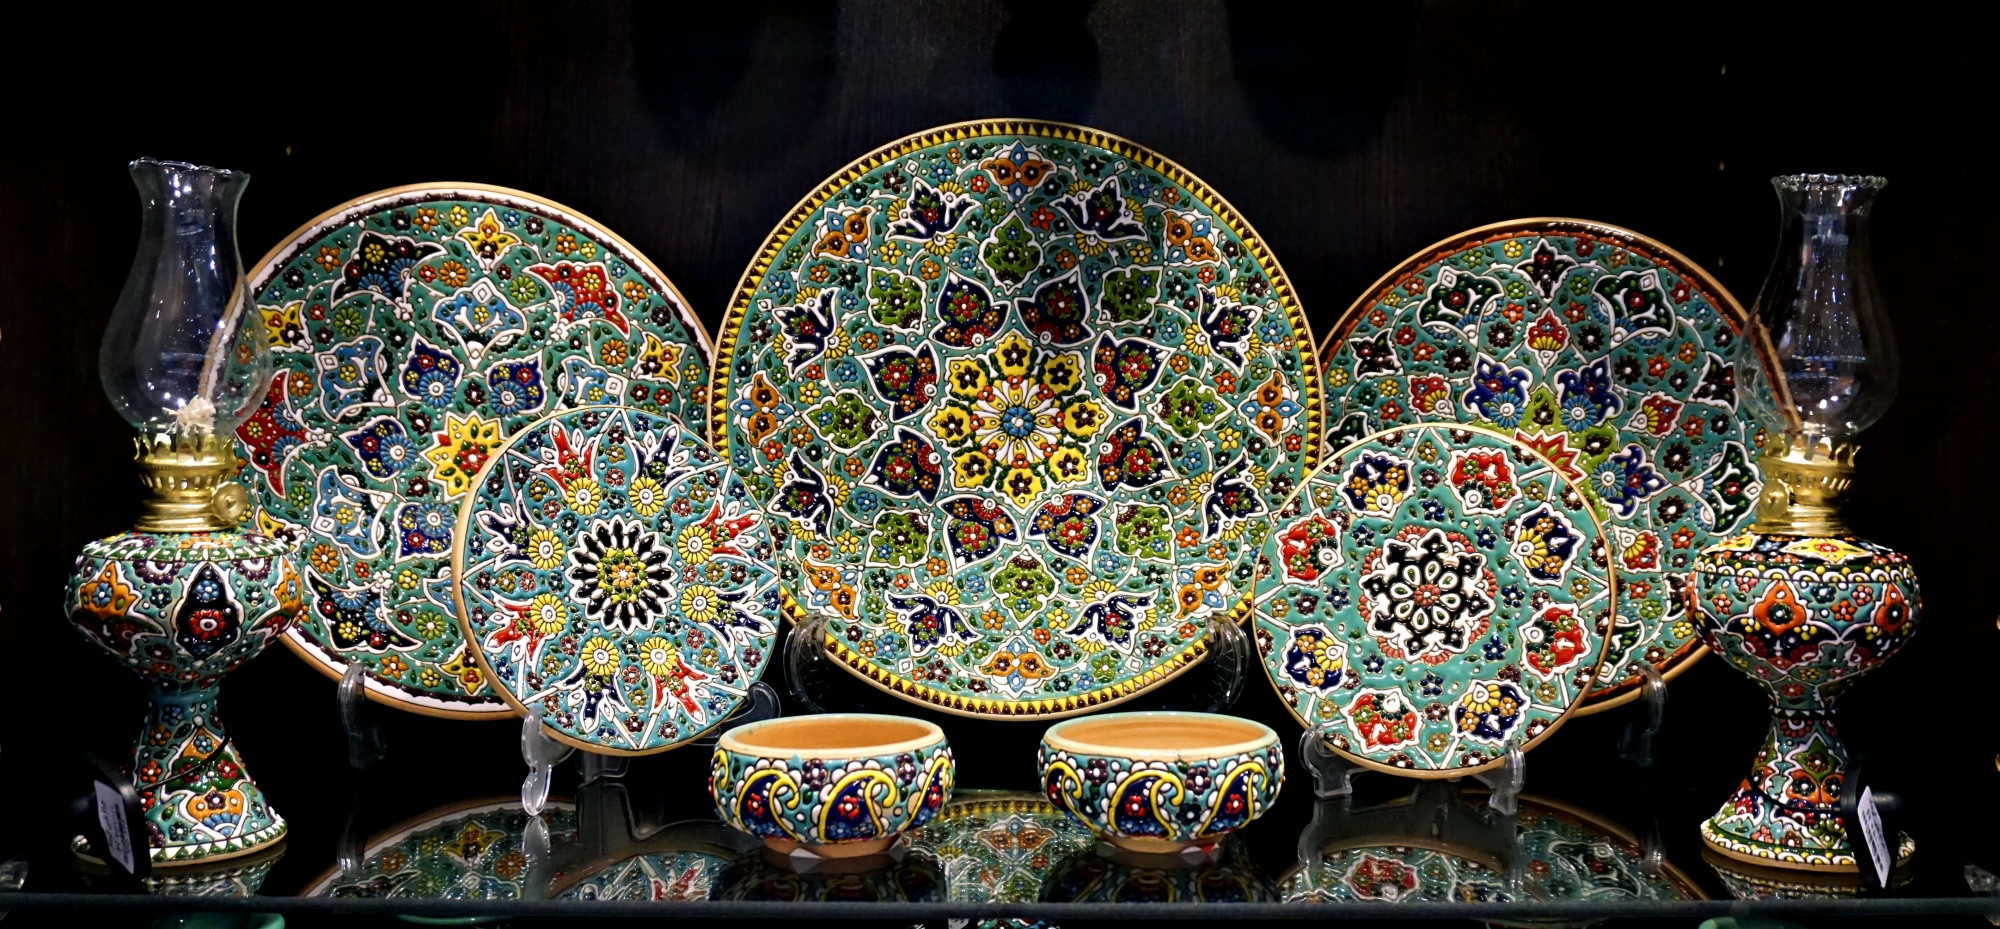 ceramics, persian, tehran, iran, flower pattern